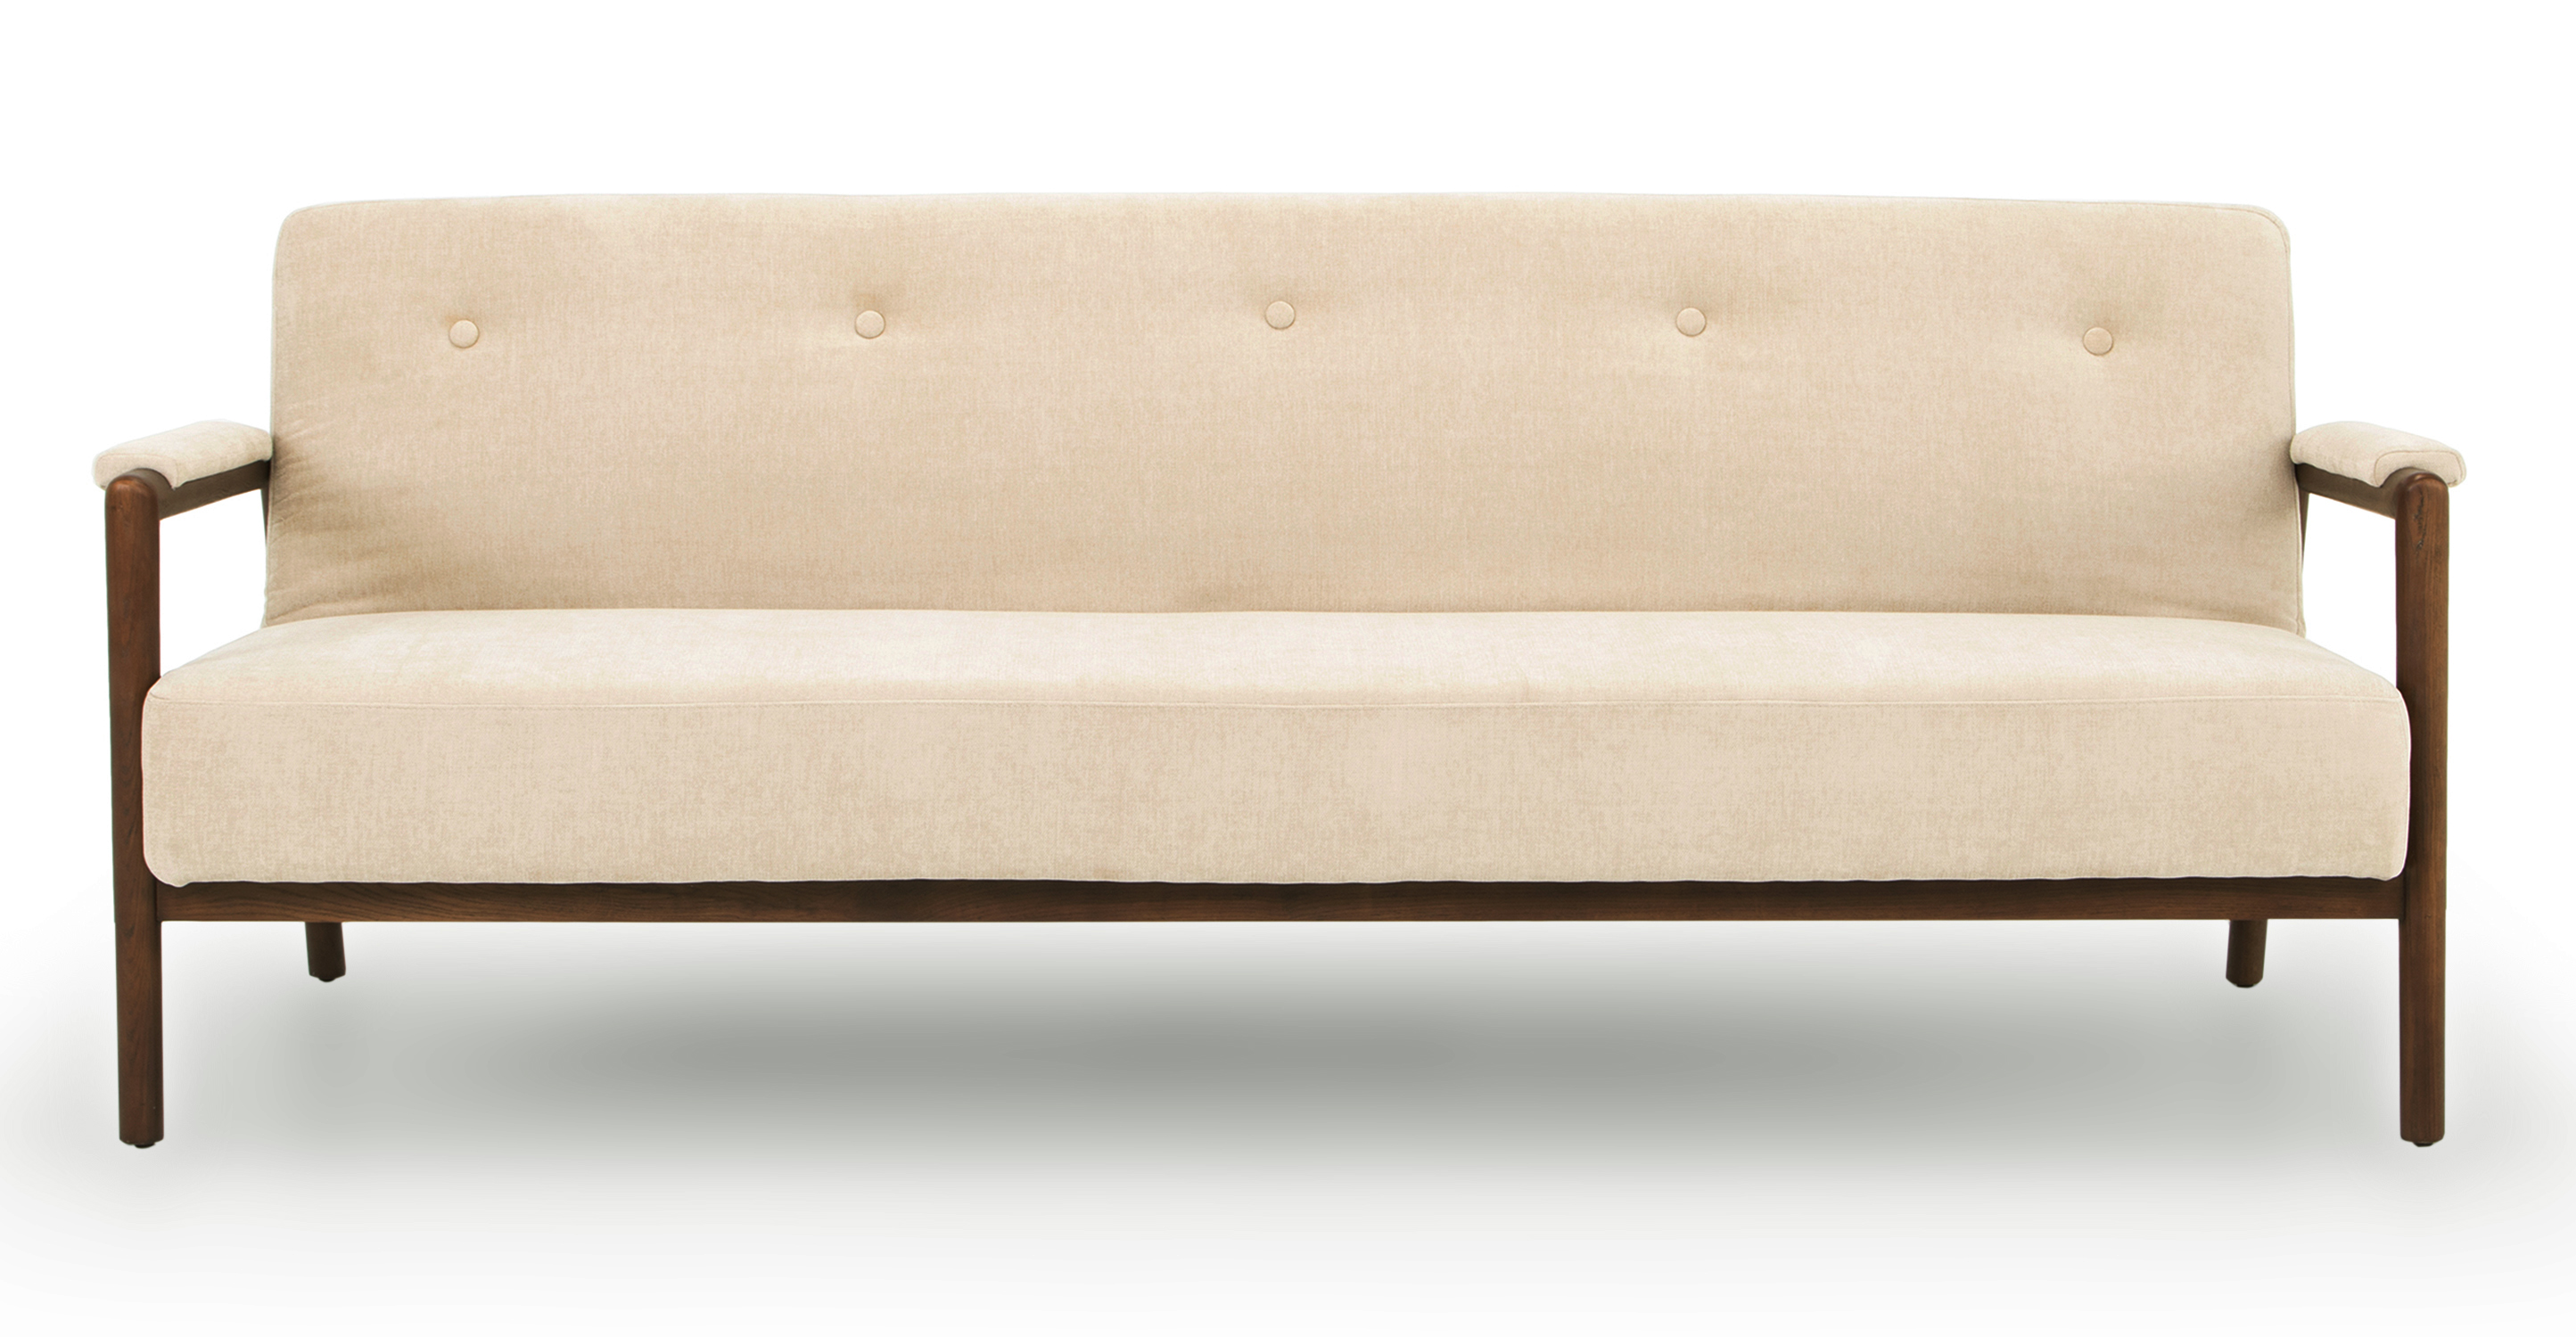 "Orson 85"" Fabric Sofa Sleeper, Macadamia"